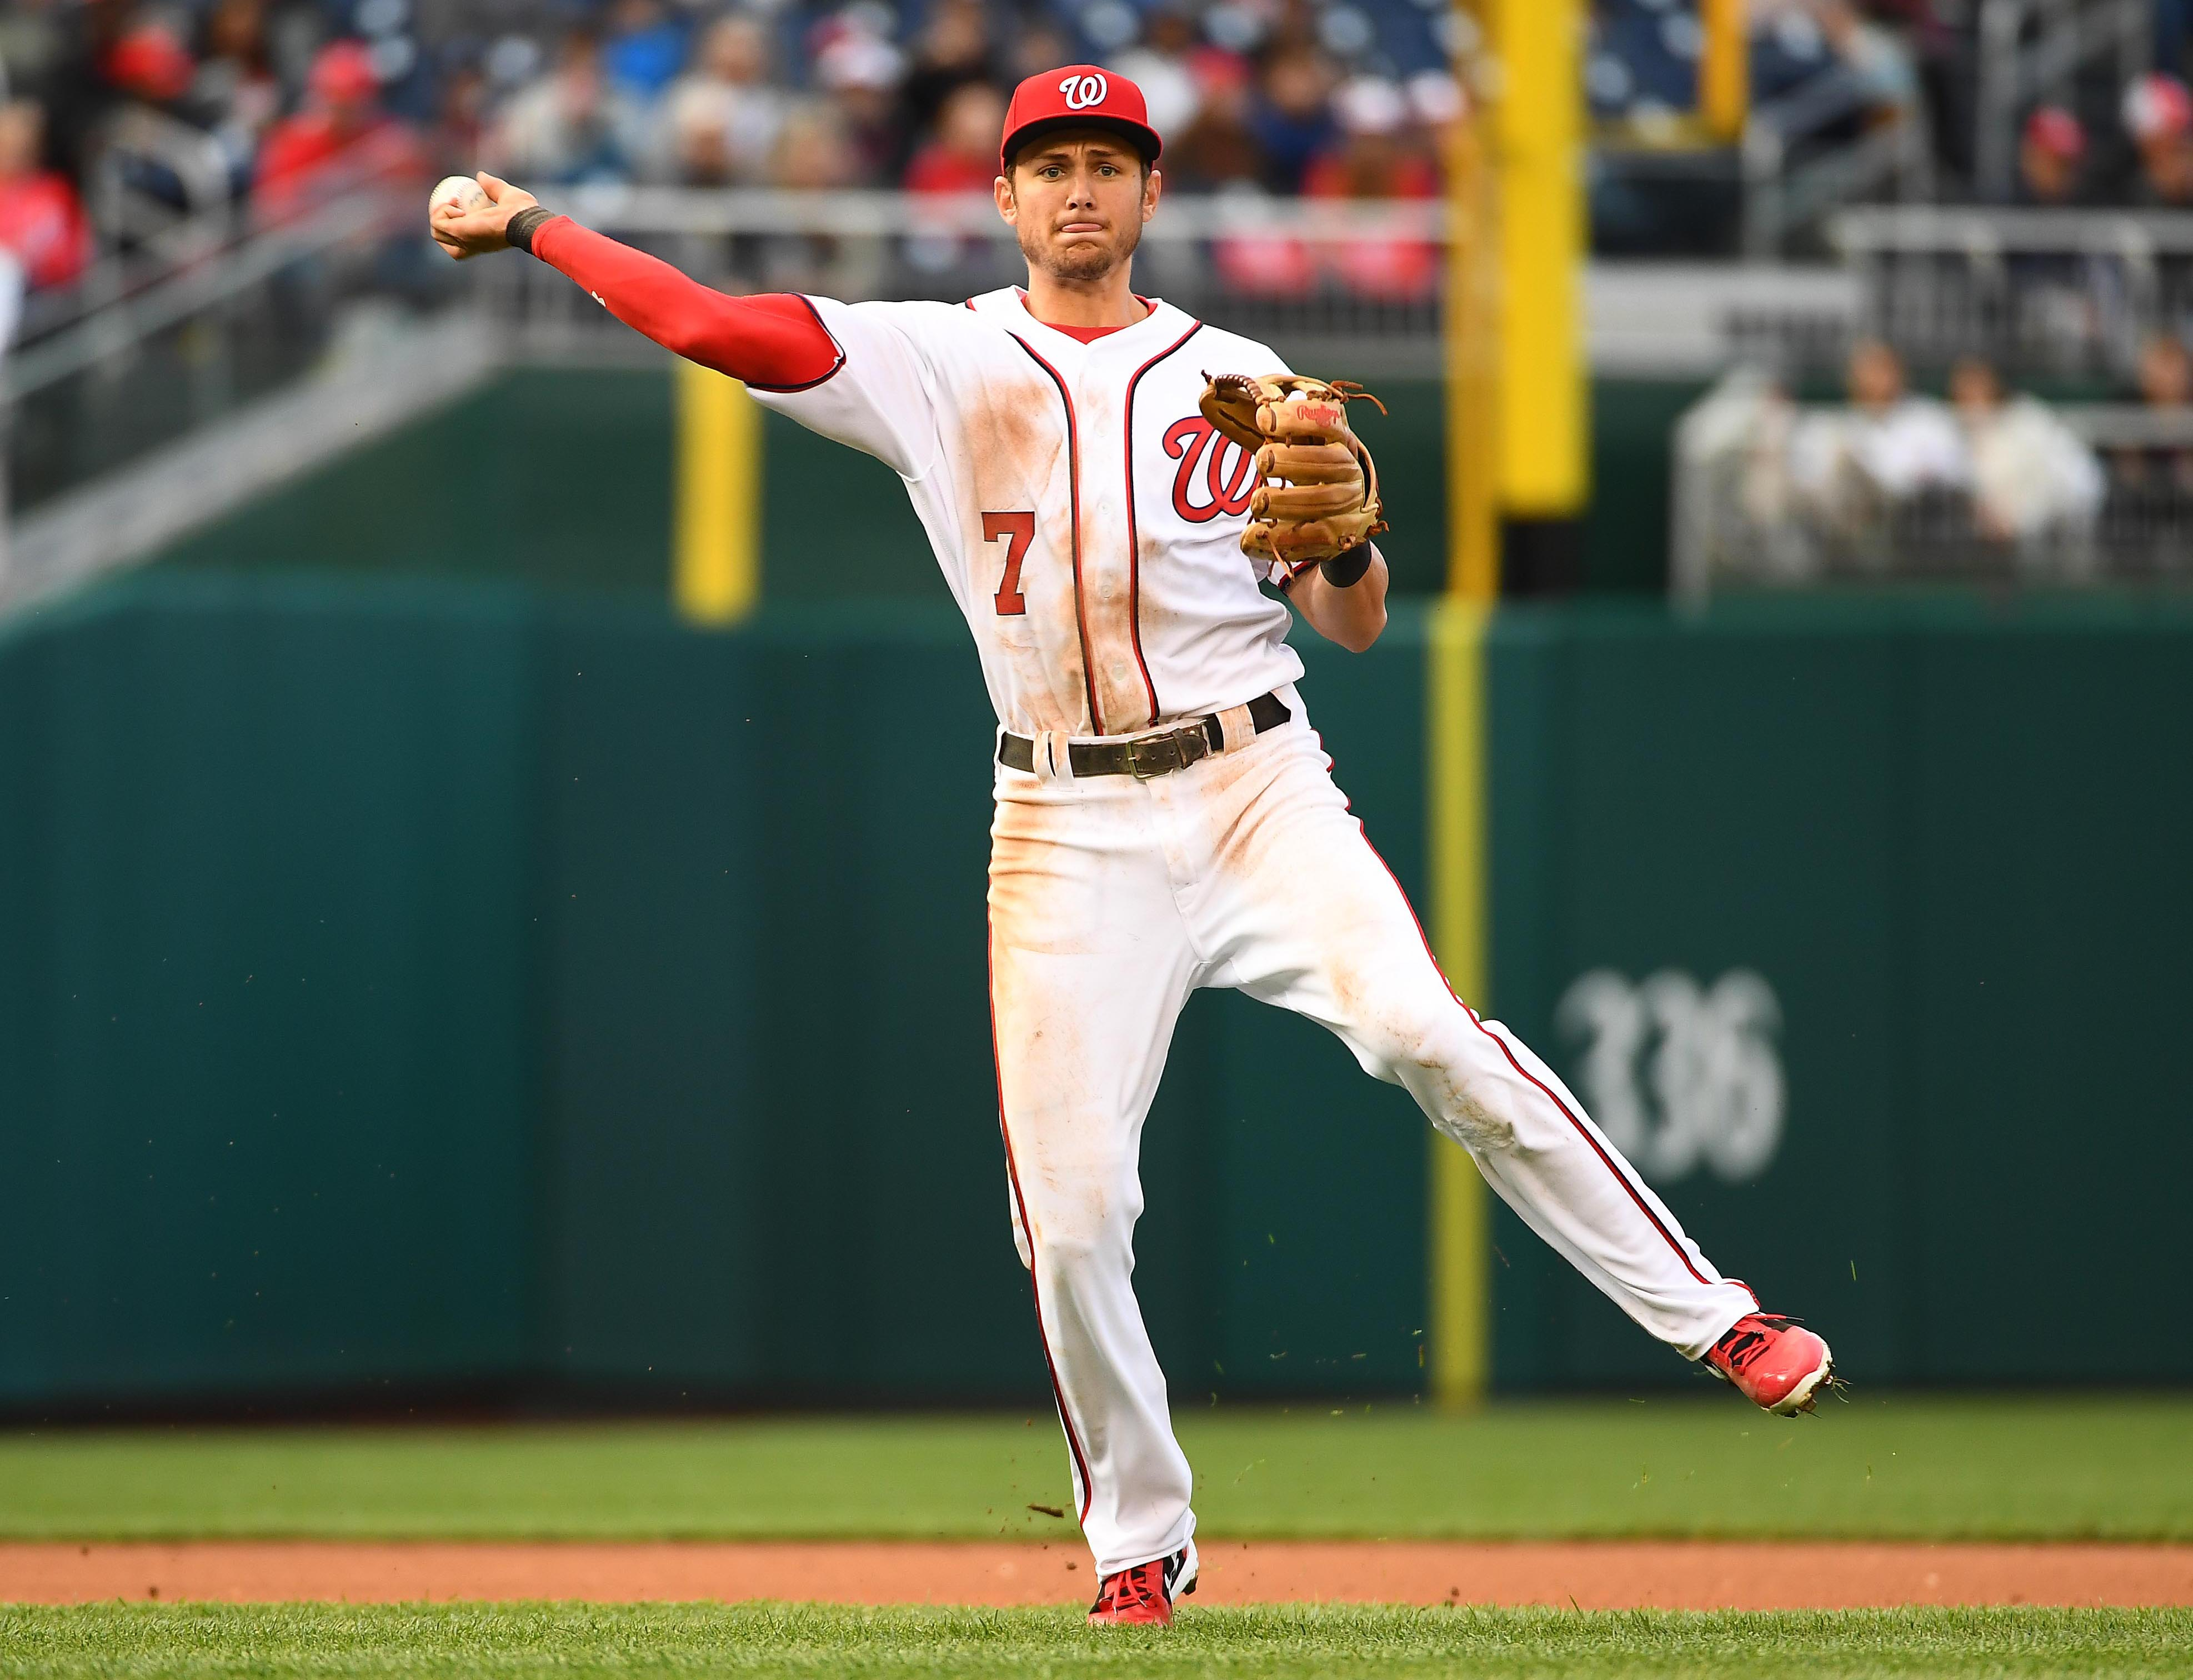 Murphy has 5 RBIs in Nats' 8-3 win over Cards